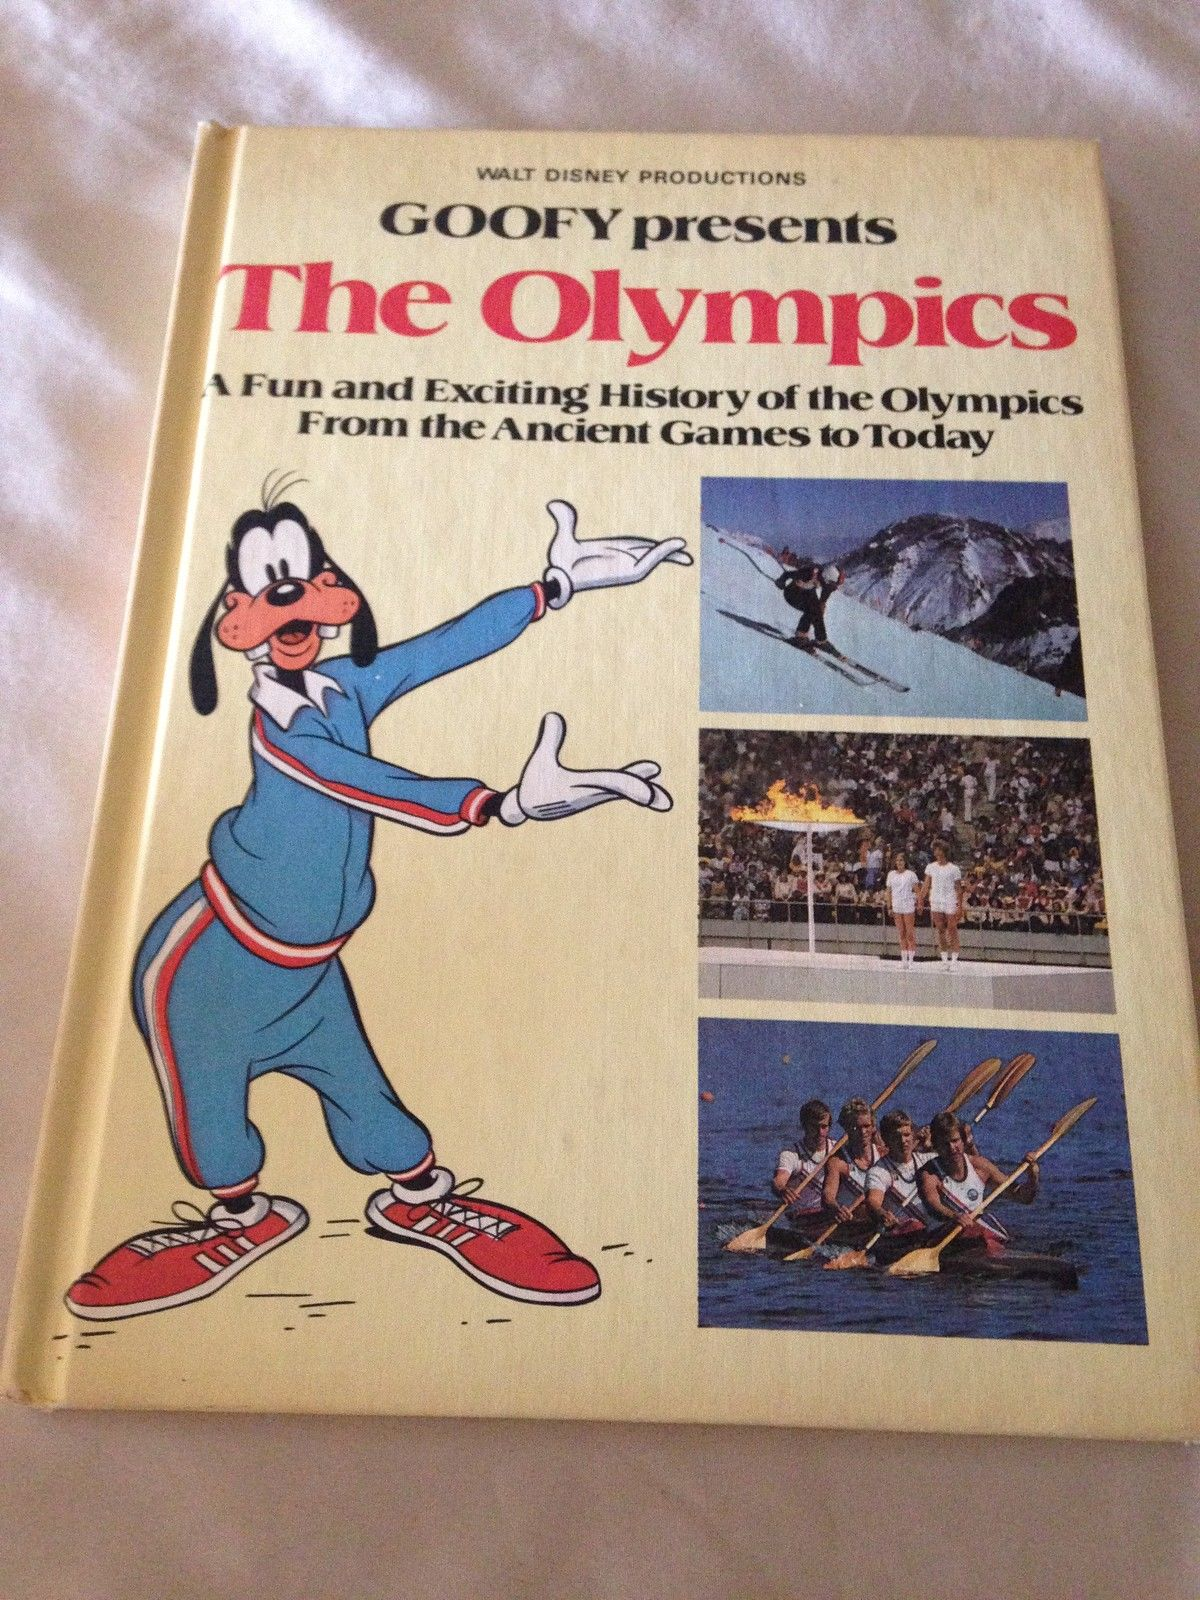 Goofy Presents the Olympics: A Fun and Exciting History of the Olympics from the Ancient Games to Today